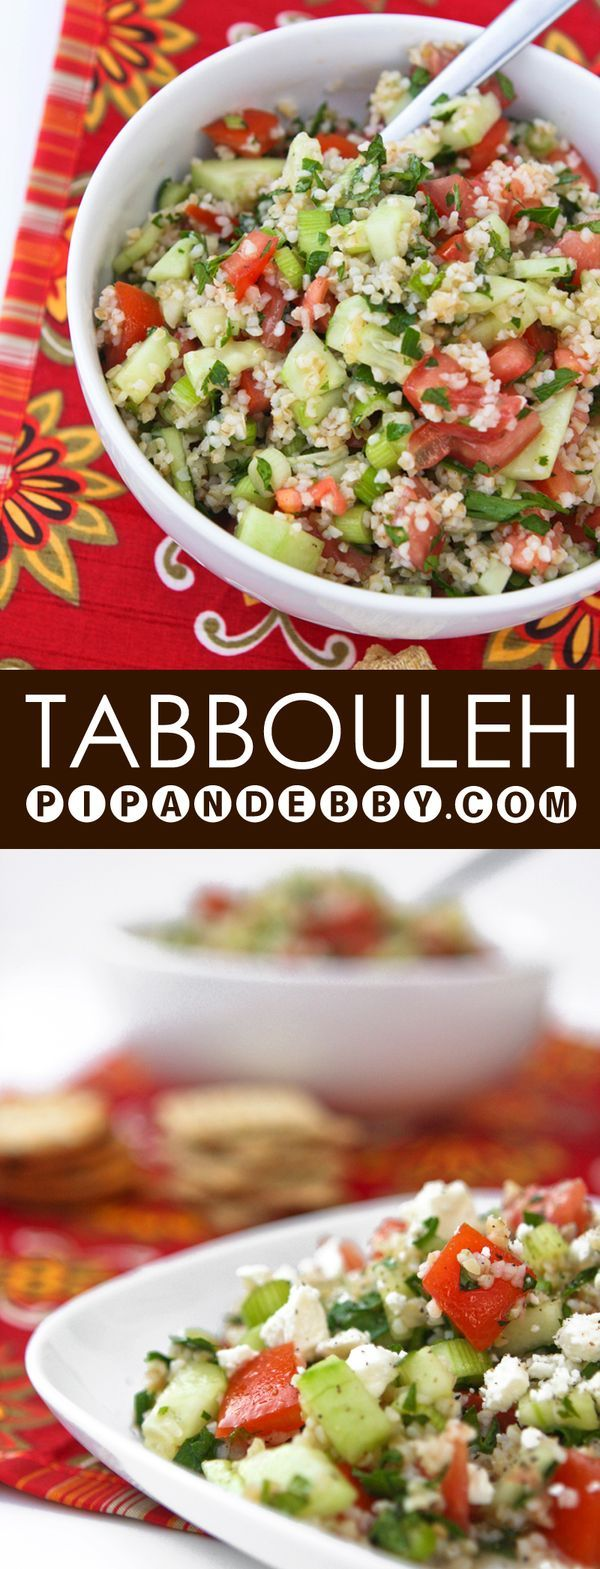 Tabbouleh | This salad is so fresh and yummy and WAY better than the store-bought version.